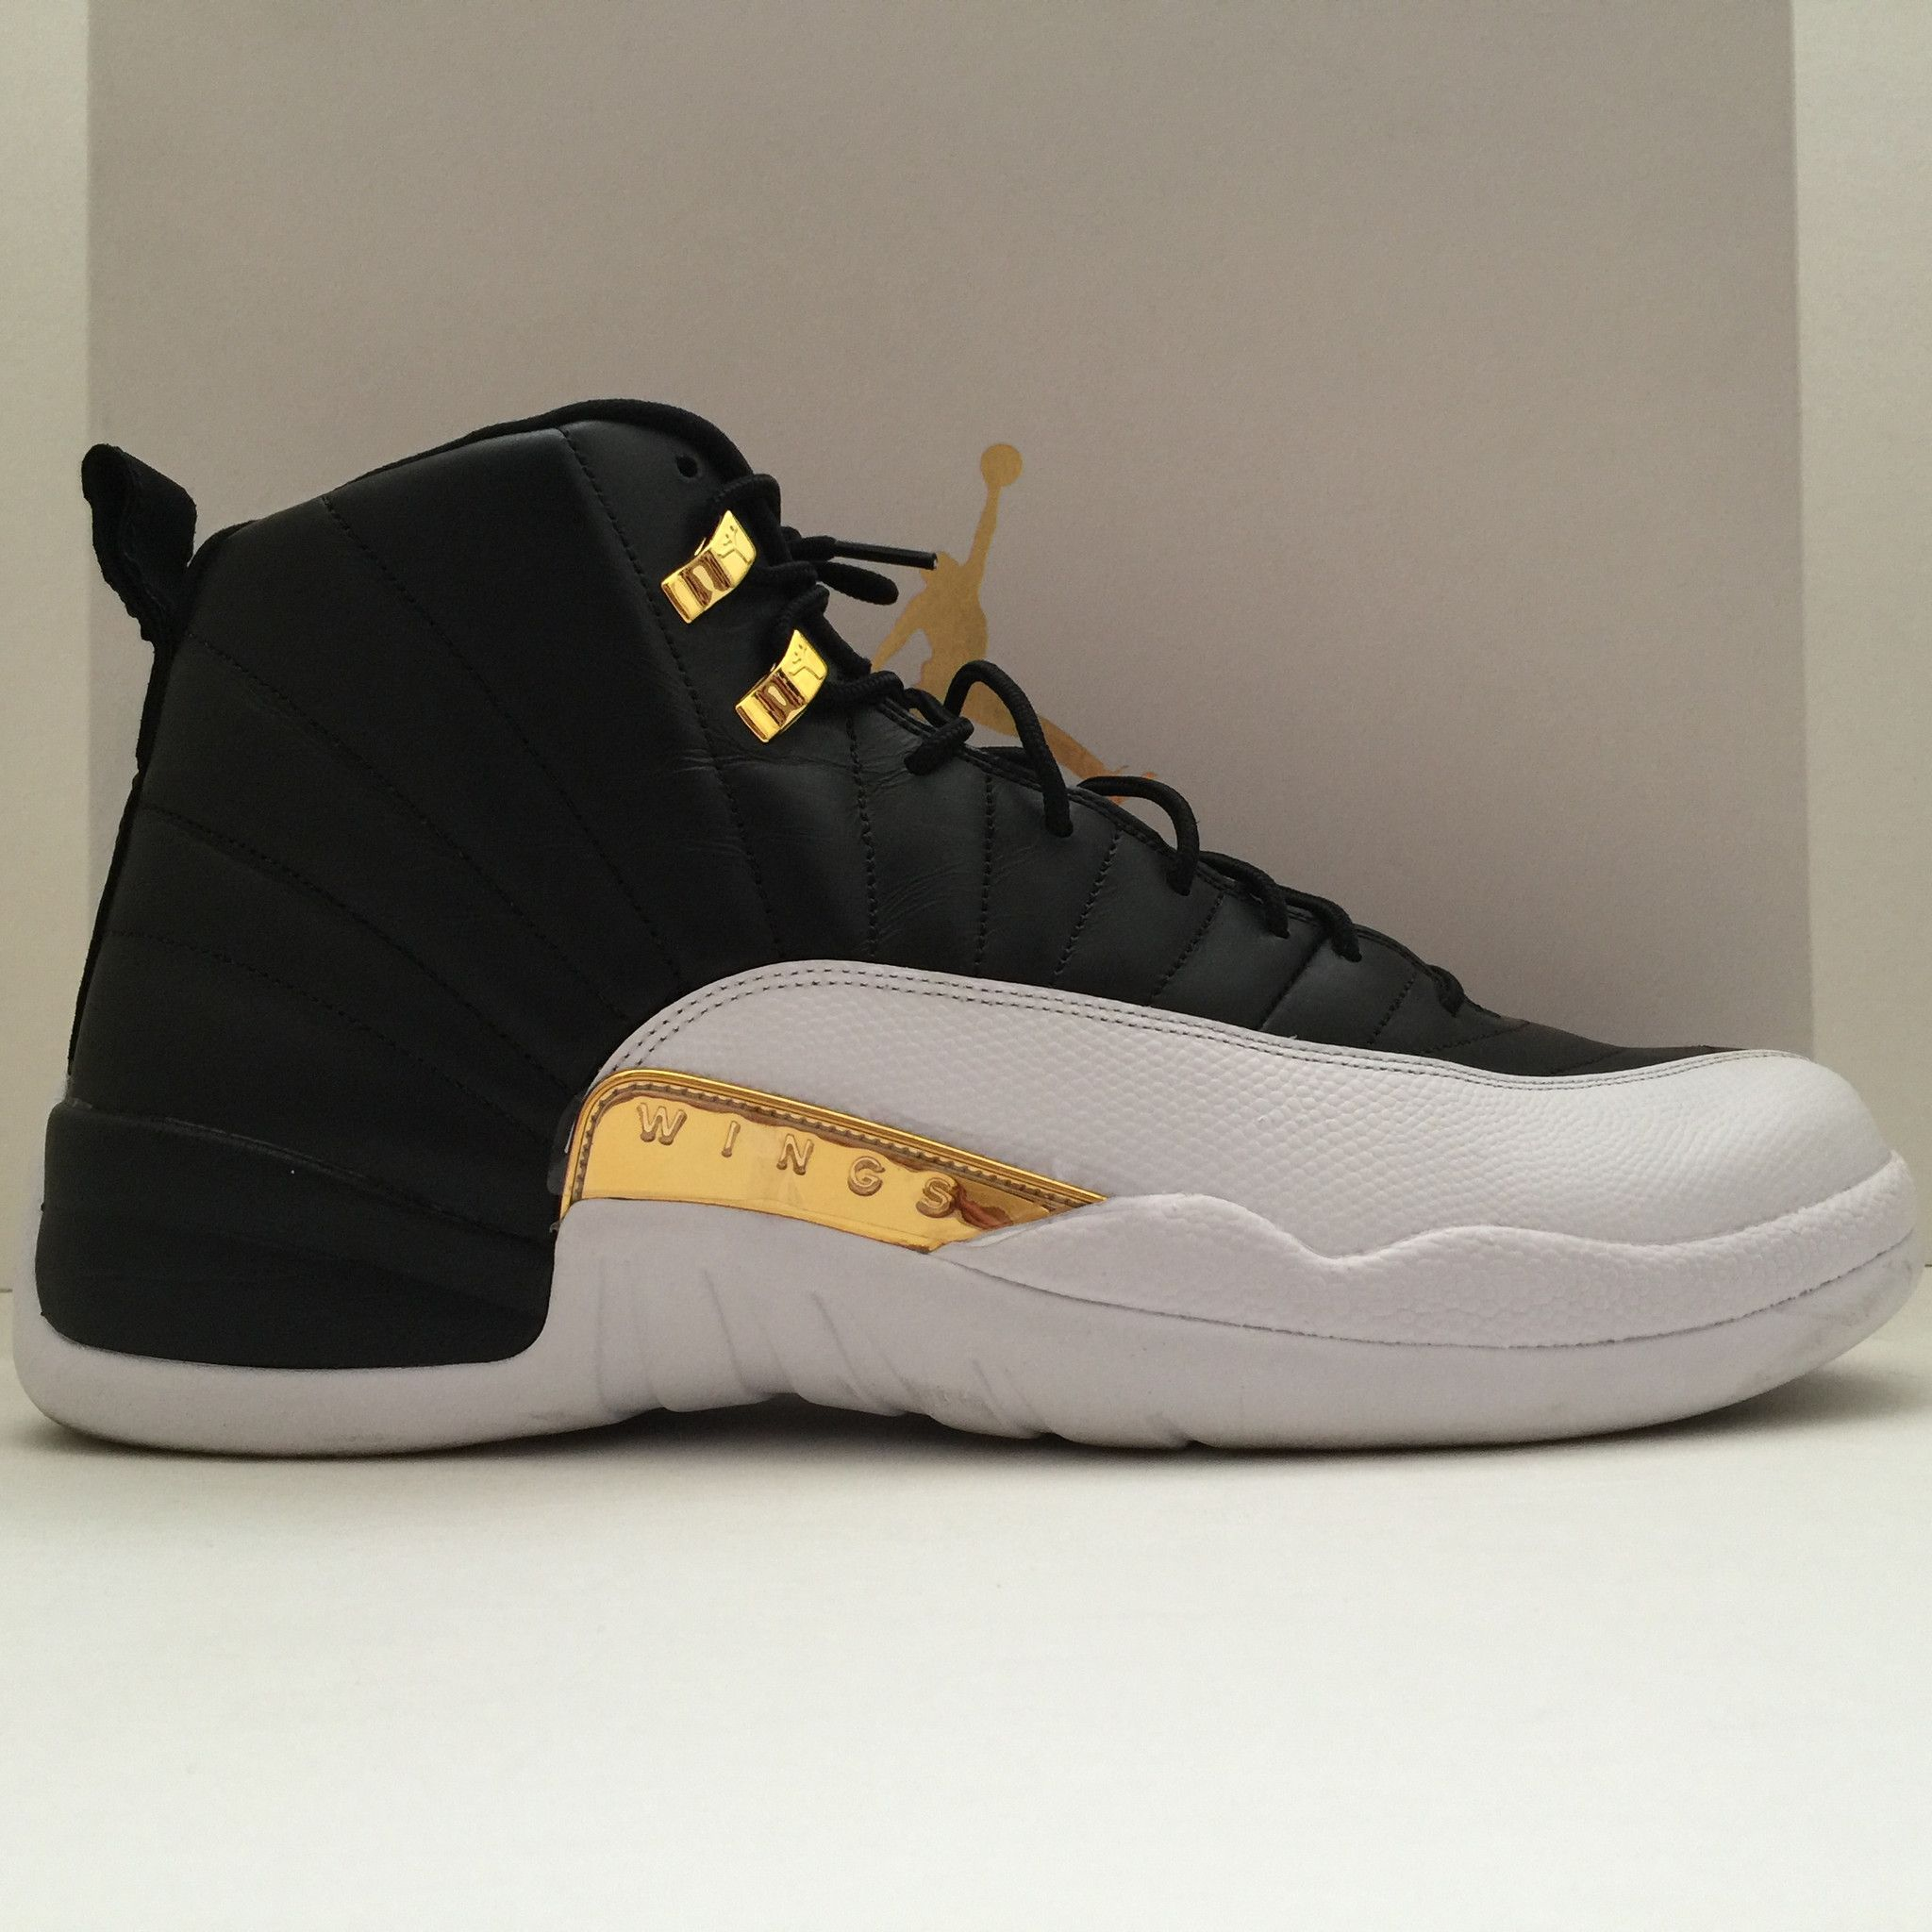 Name   Nike Air Jordan 12 Wings Size (US)   14 Condition   Used ... 130b941b3